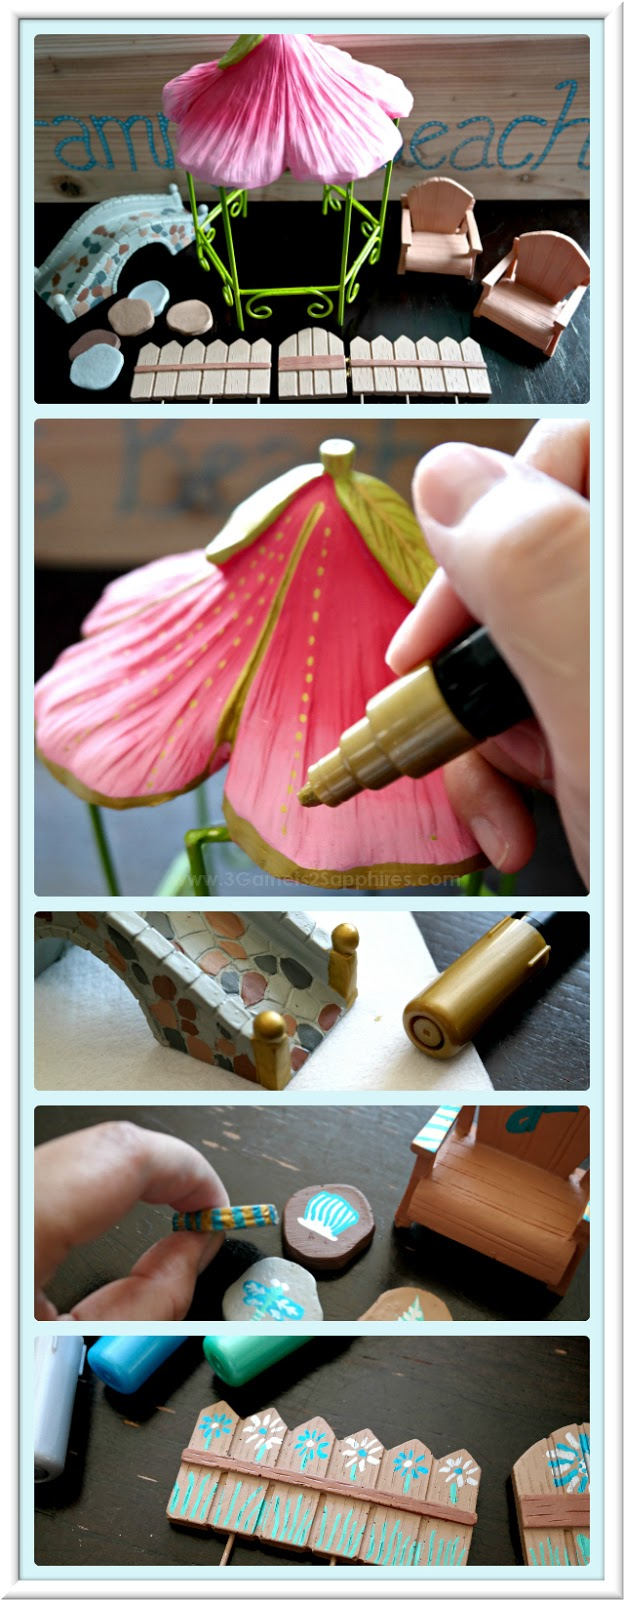 How to Decorate Fairy Garden Items with Acrylic Paint Pens  |  3 Garnets & 2 Sapphires